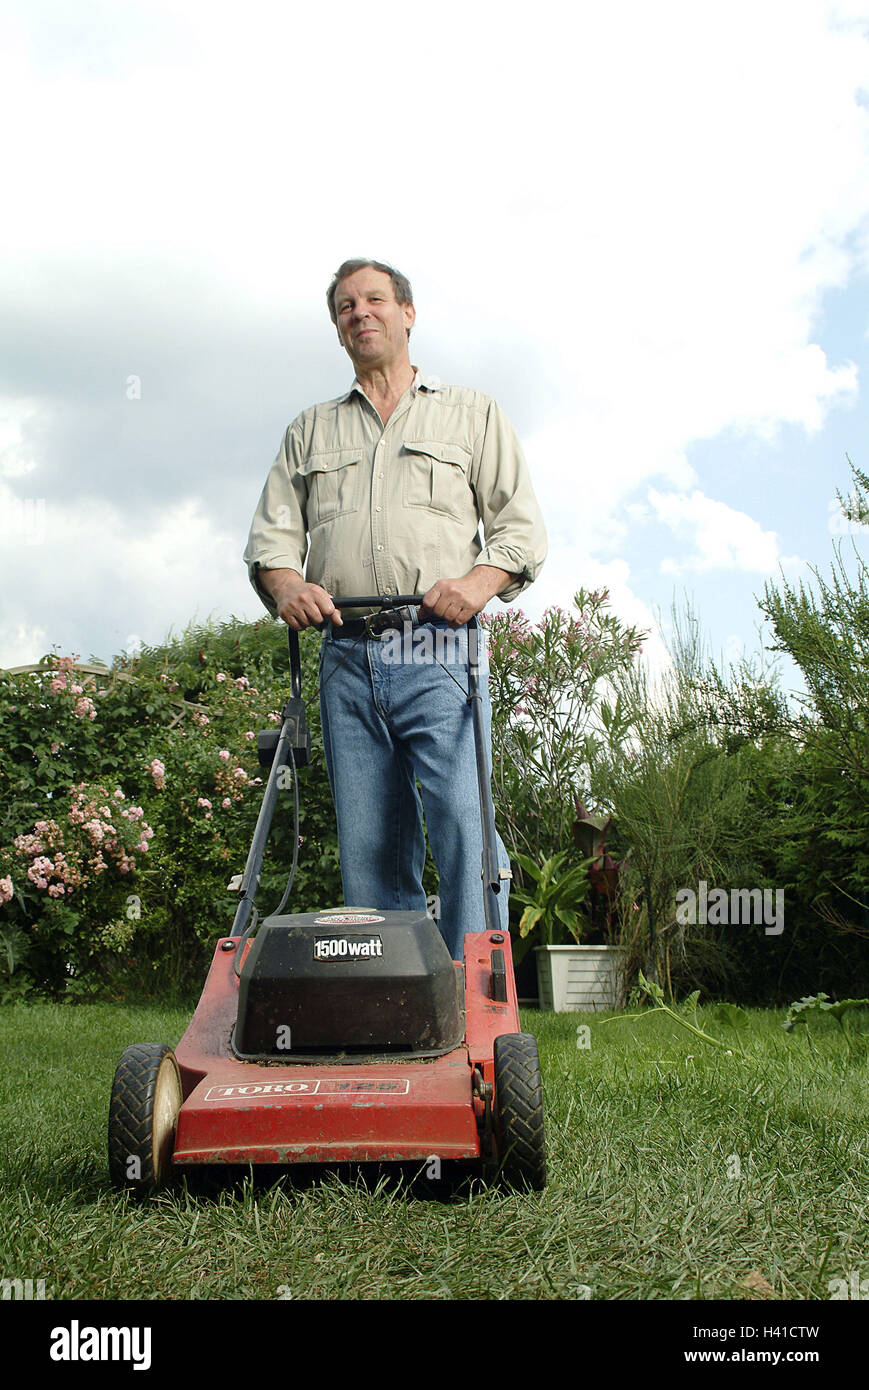 Garden, meadow, man, lawn mower, middle old person, 40-50 years